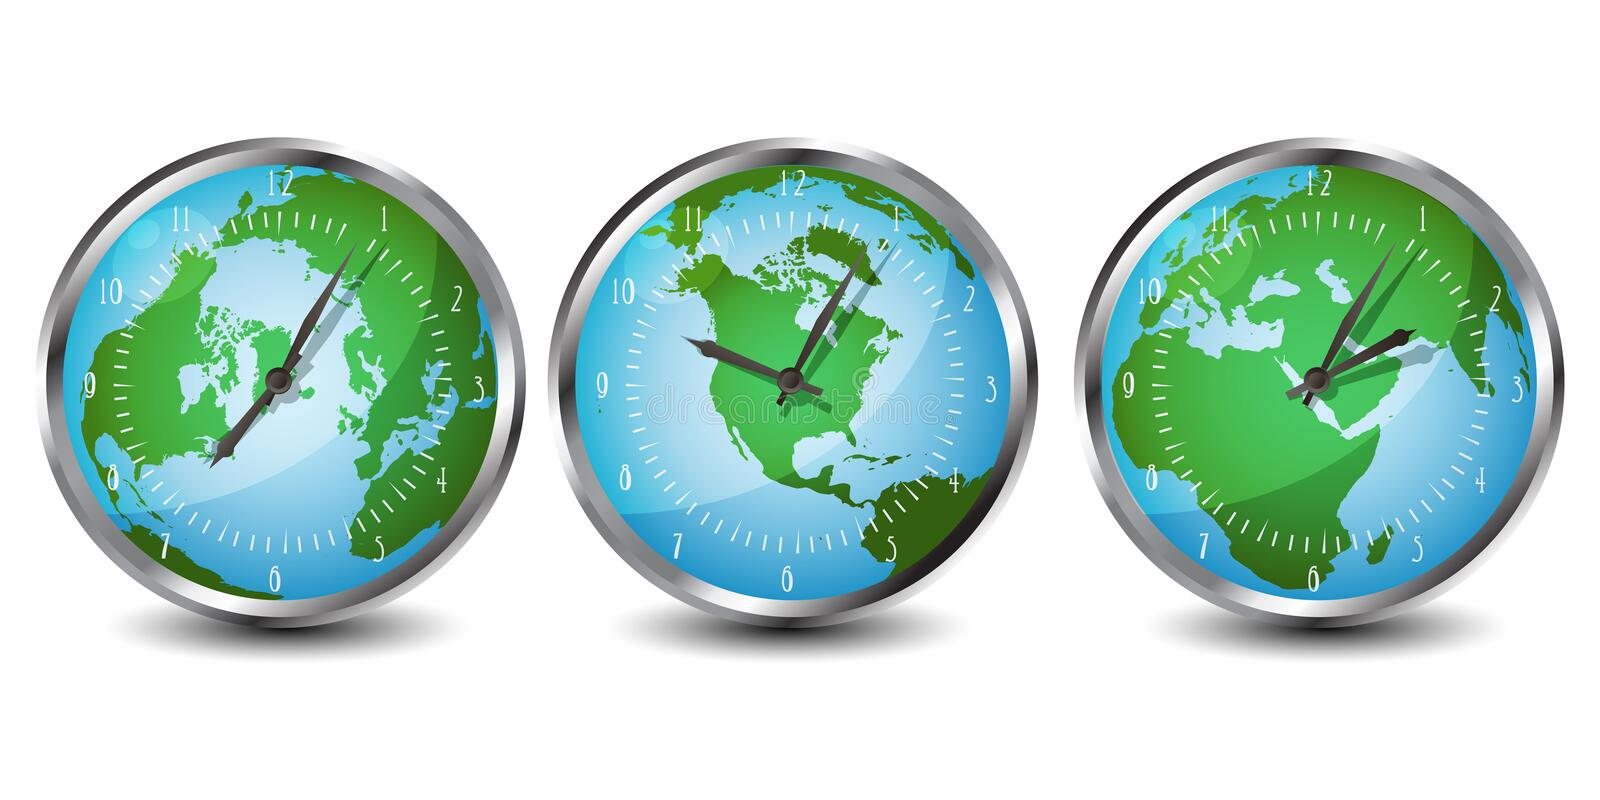 World clocks royalty free illustration